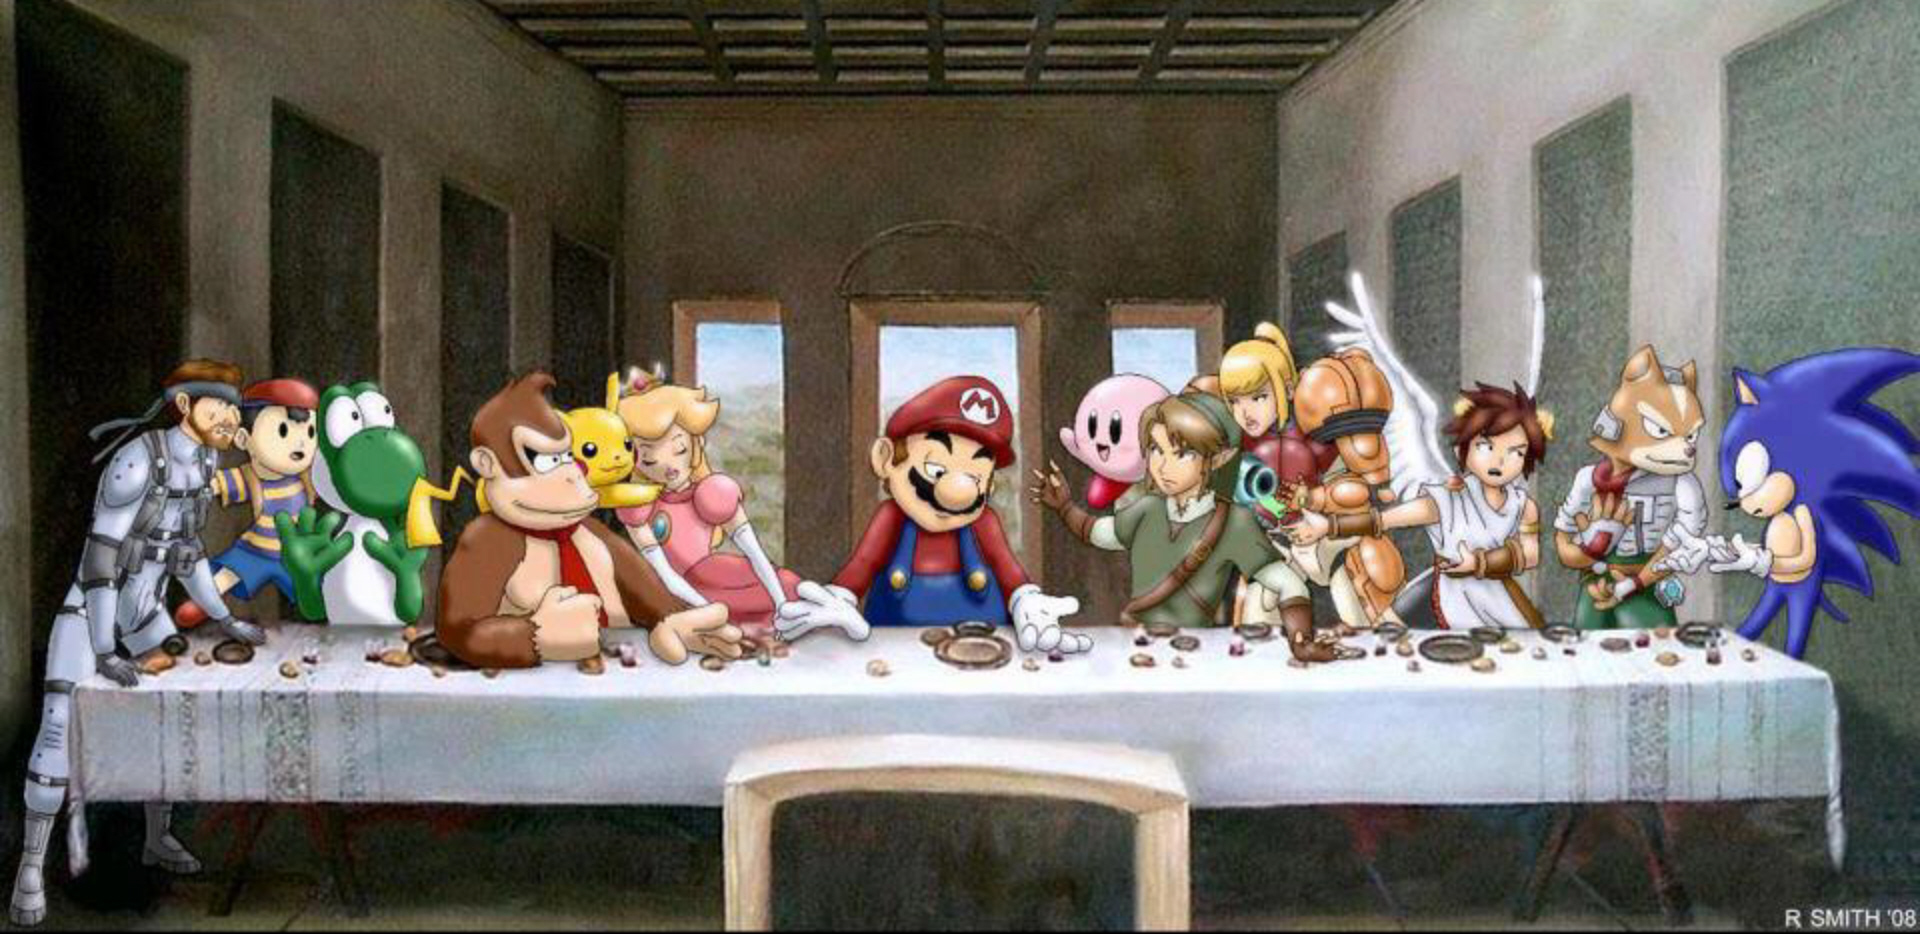 Nintendo last supper story artwork wallpaper watch us - American history x dinner table scene ...